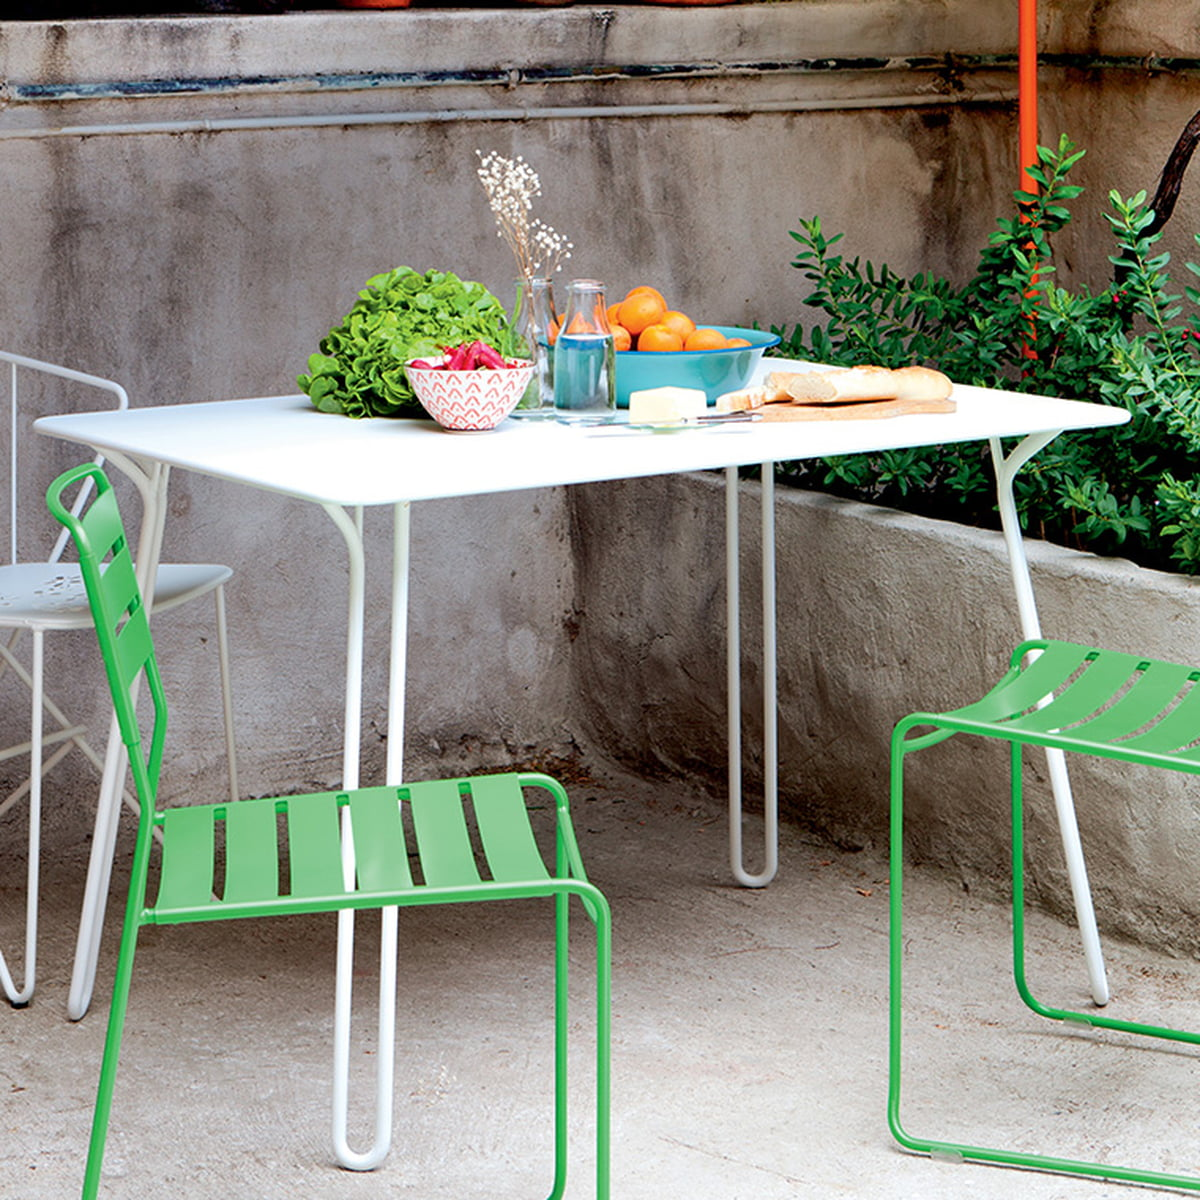 surprising garden table by fermob connox. Black Bedroom Furniture Sets. Home Design Ideas